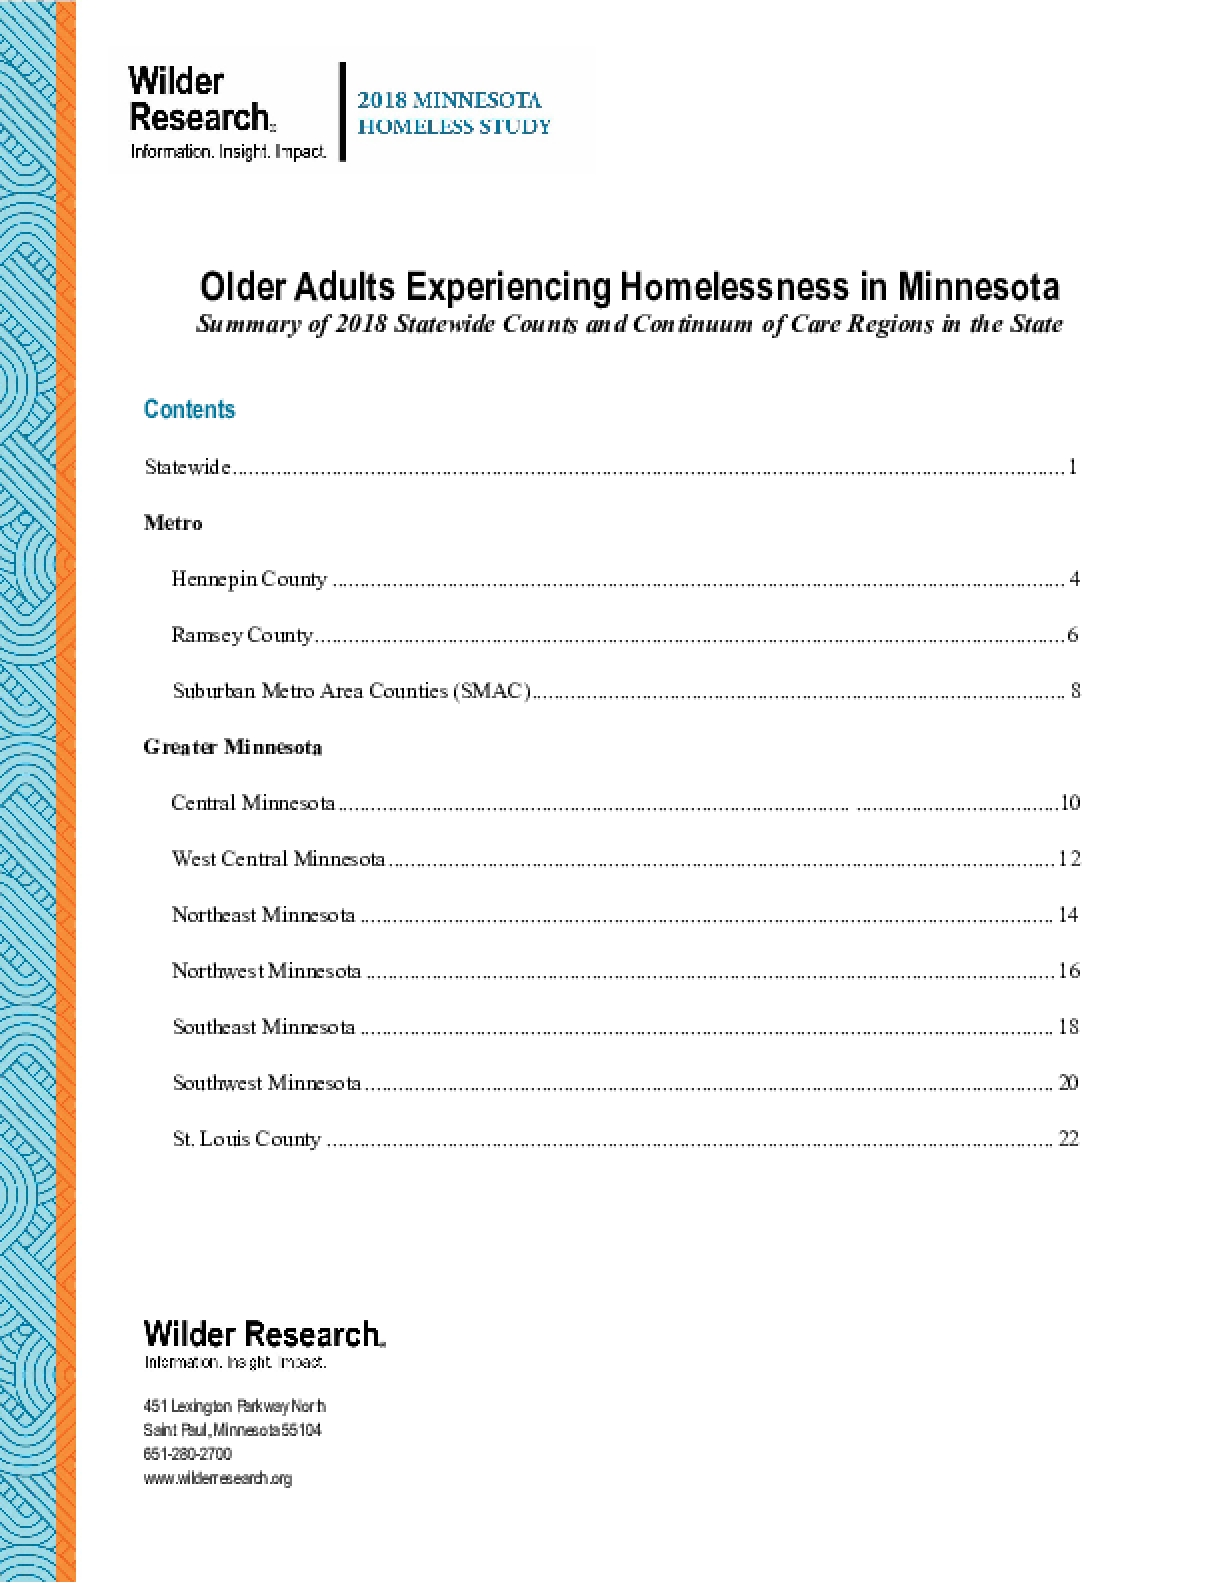 Older Adults Experiencing Homelessness in Minnesota: Summary of the 2018 Statewide Counts and Continuum of Care Regions in the State